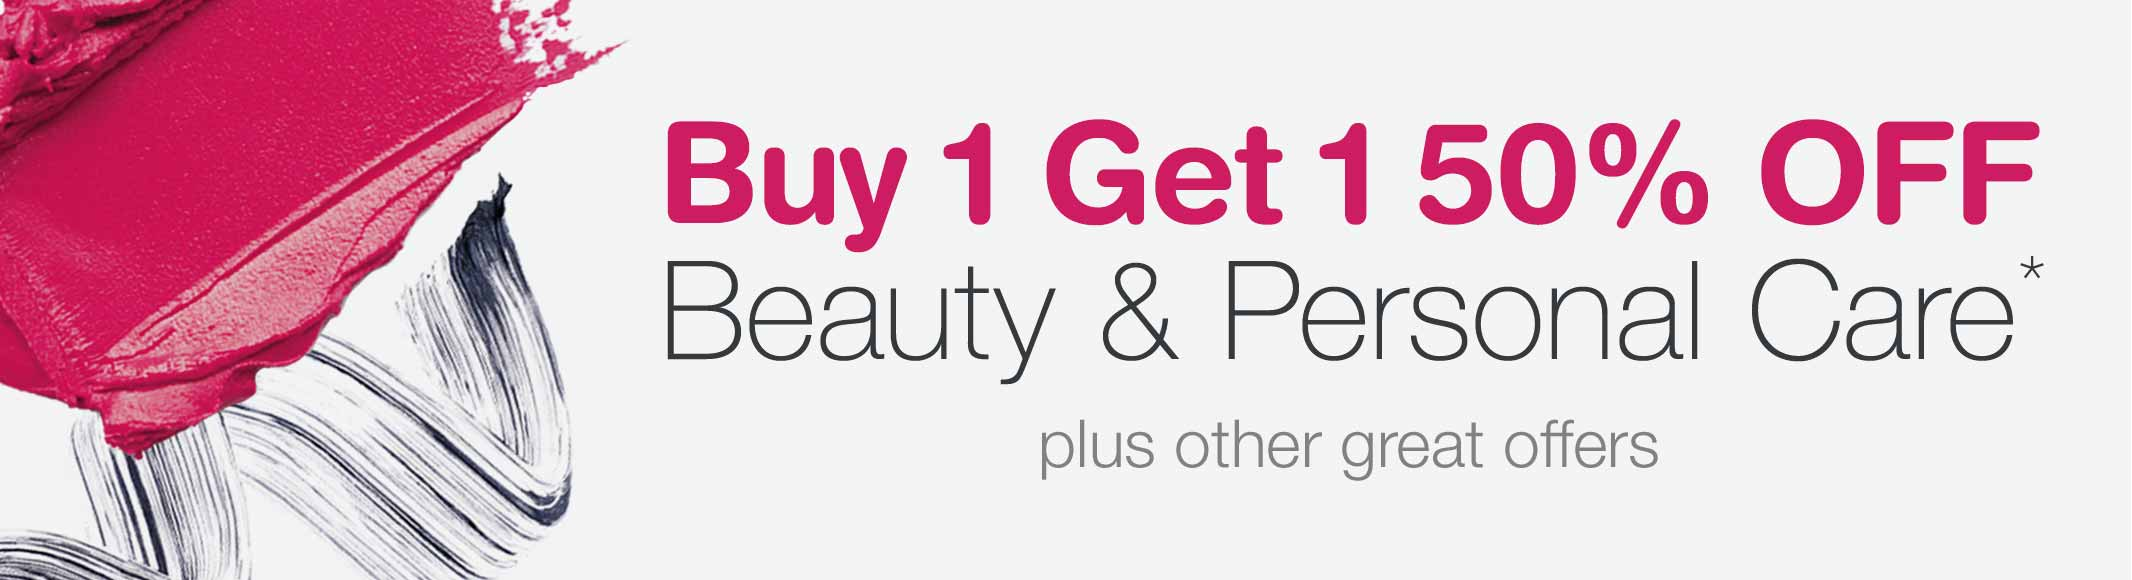 Buy 1 Get 1 50% OFF Beauty & Personal Care.* Plus other great offers.